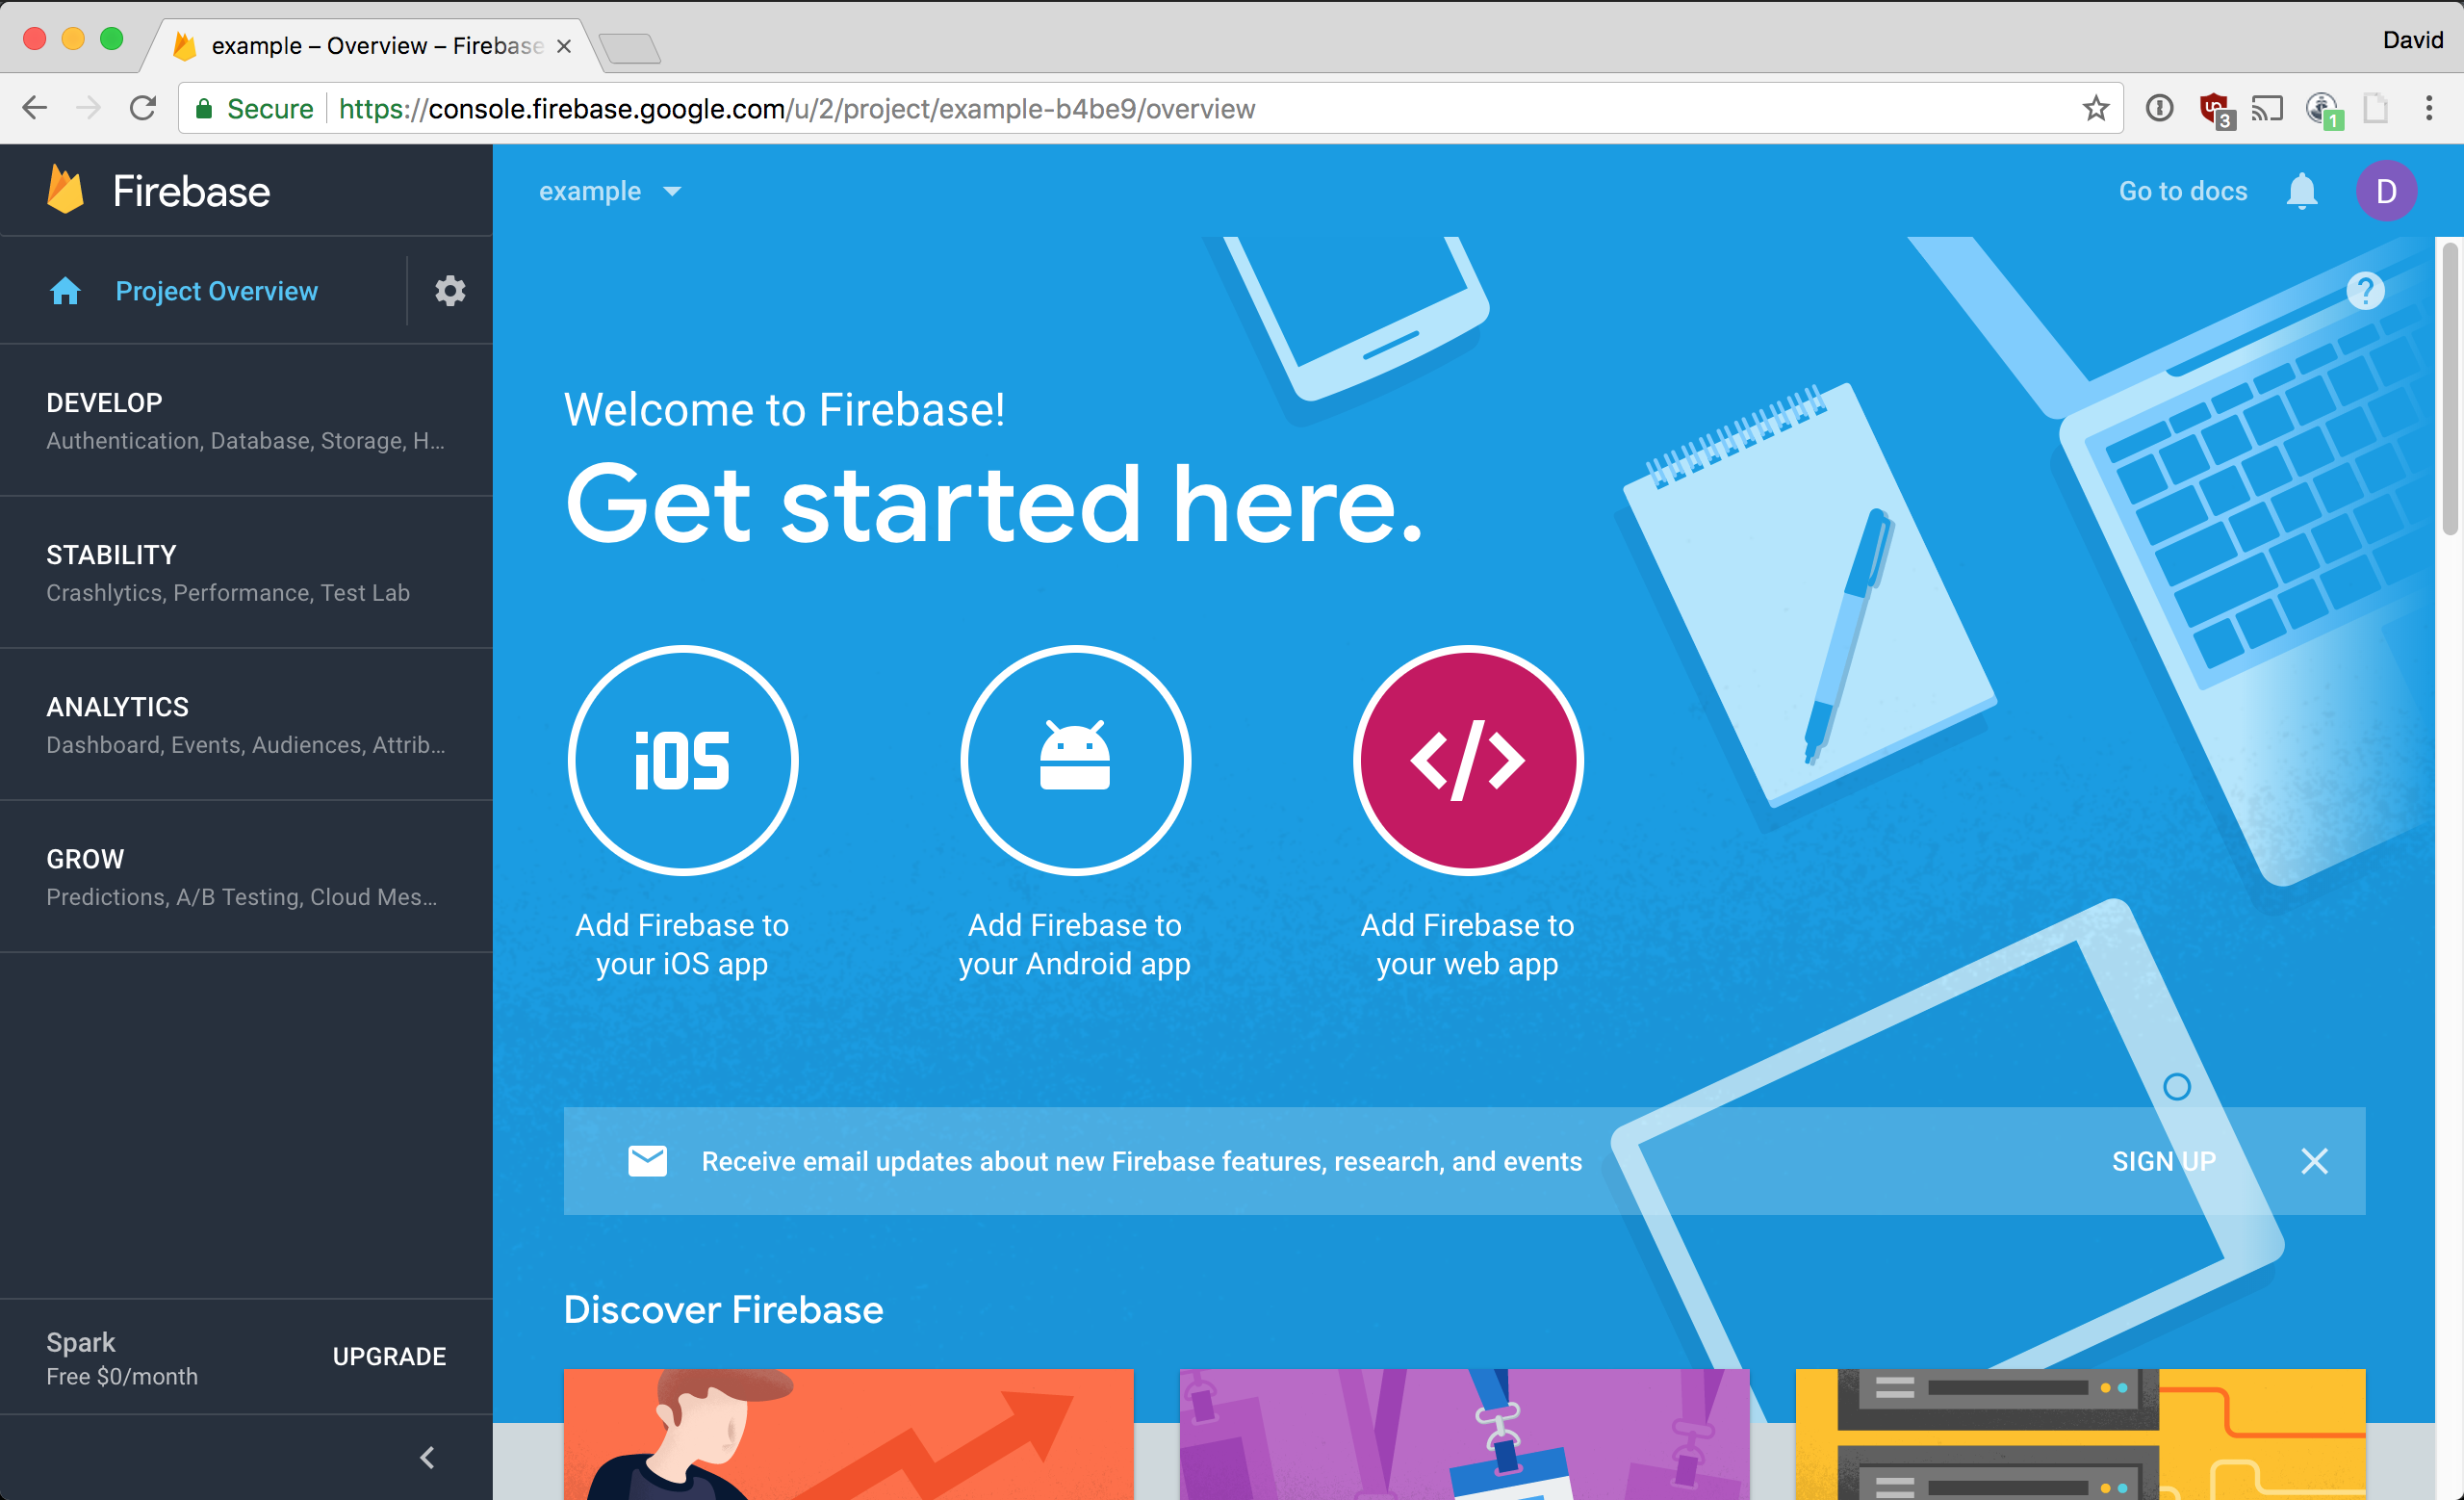 Click Add Firebase to your web app